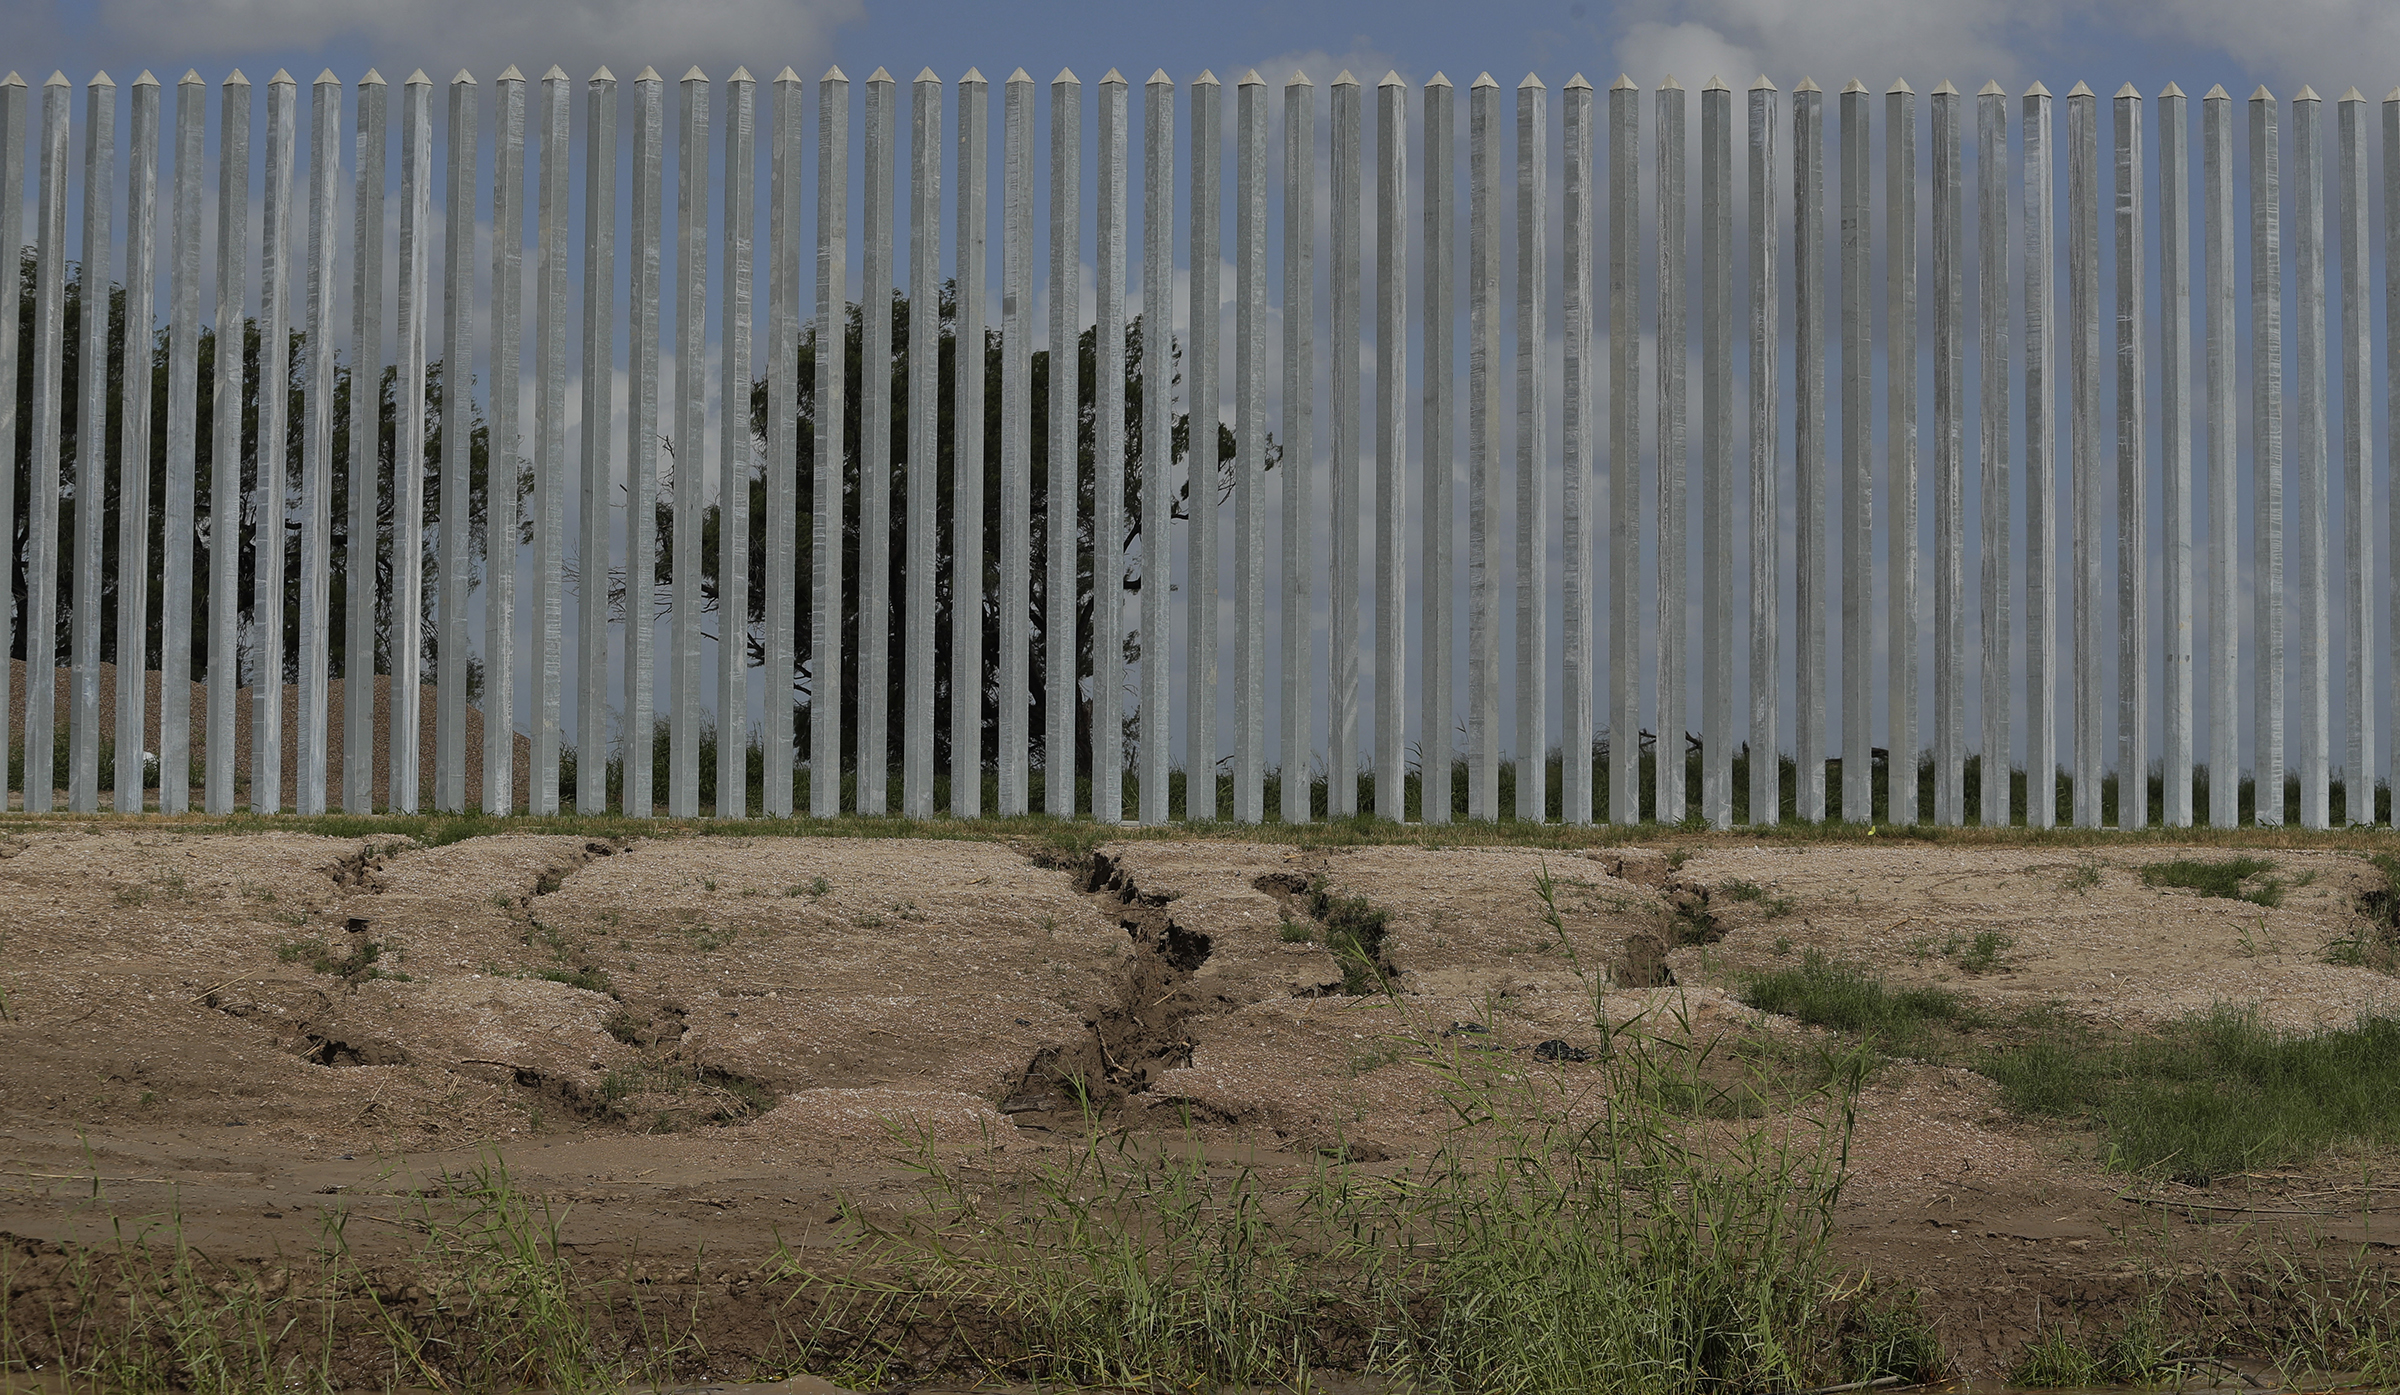 Erosion damage caused by Hurricane Hanna is seen along the Fisher border wall along the Rio Grande River near Mission, Texas, on July 30, 2020.